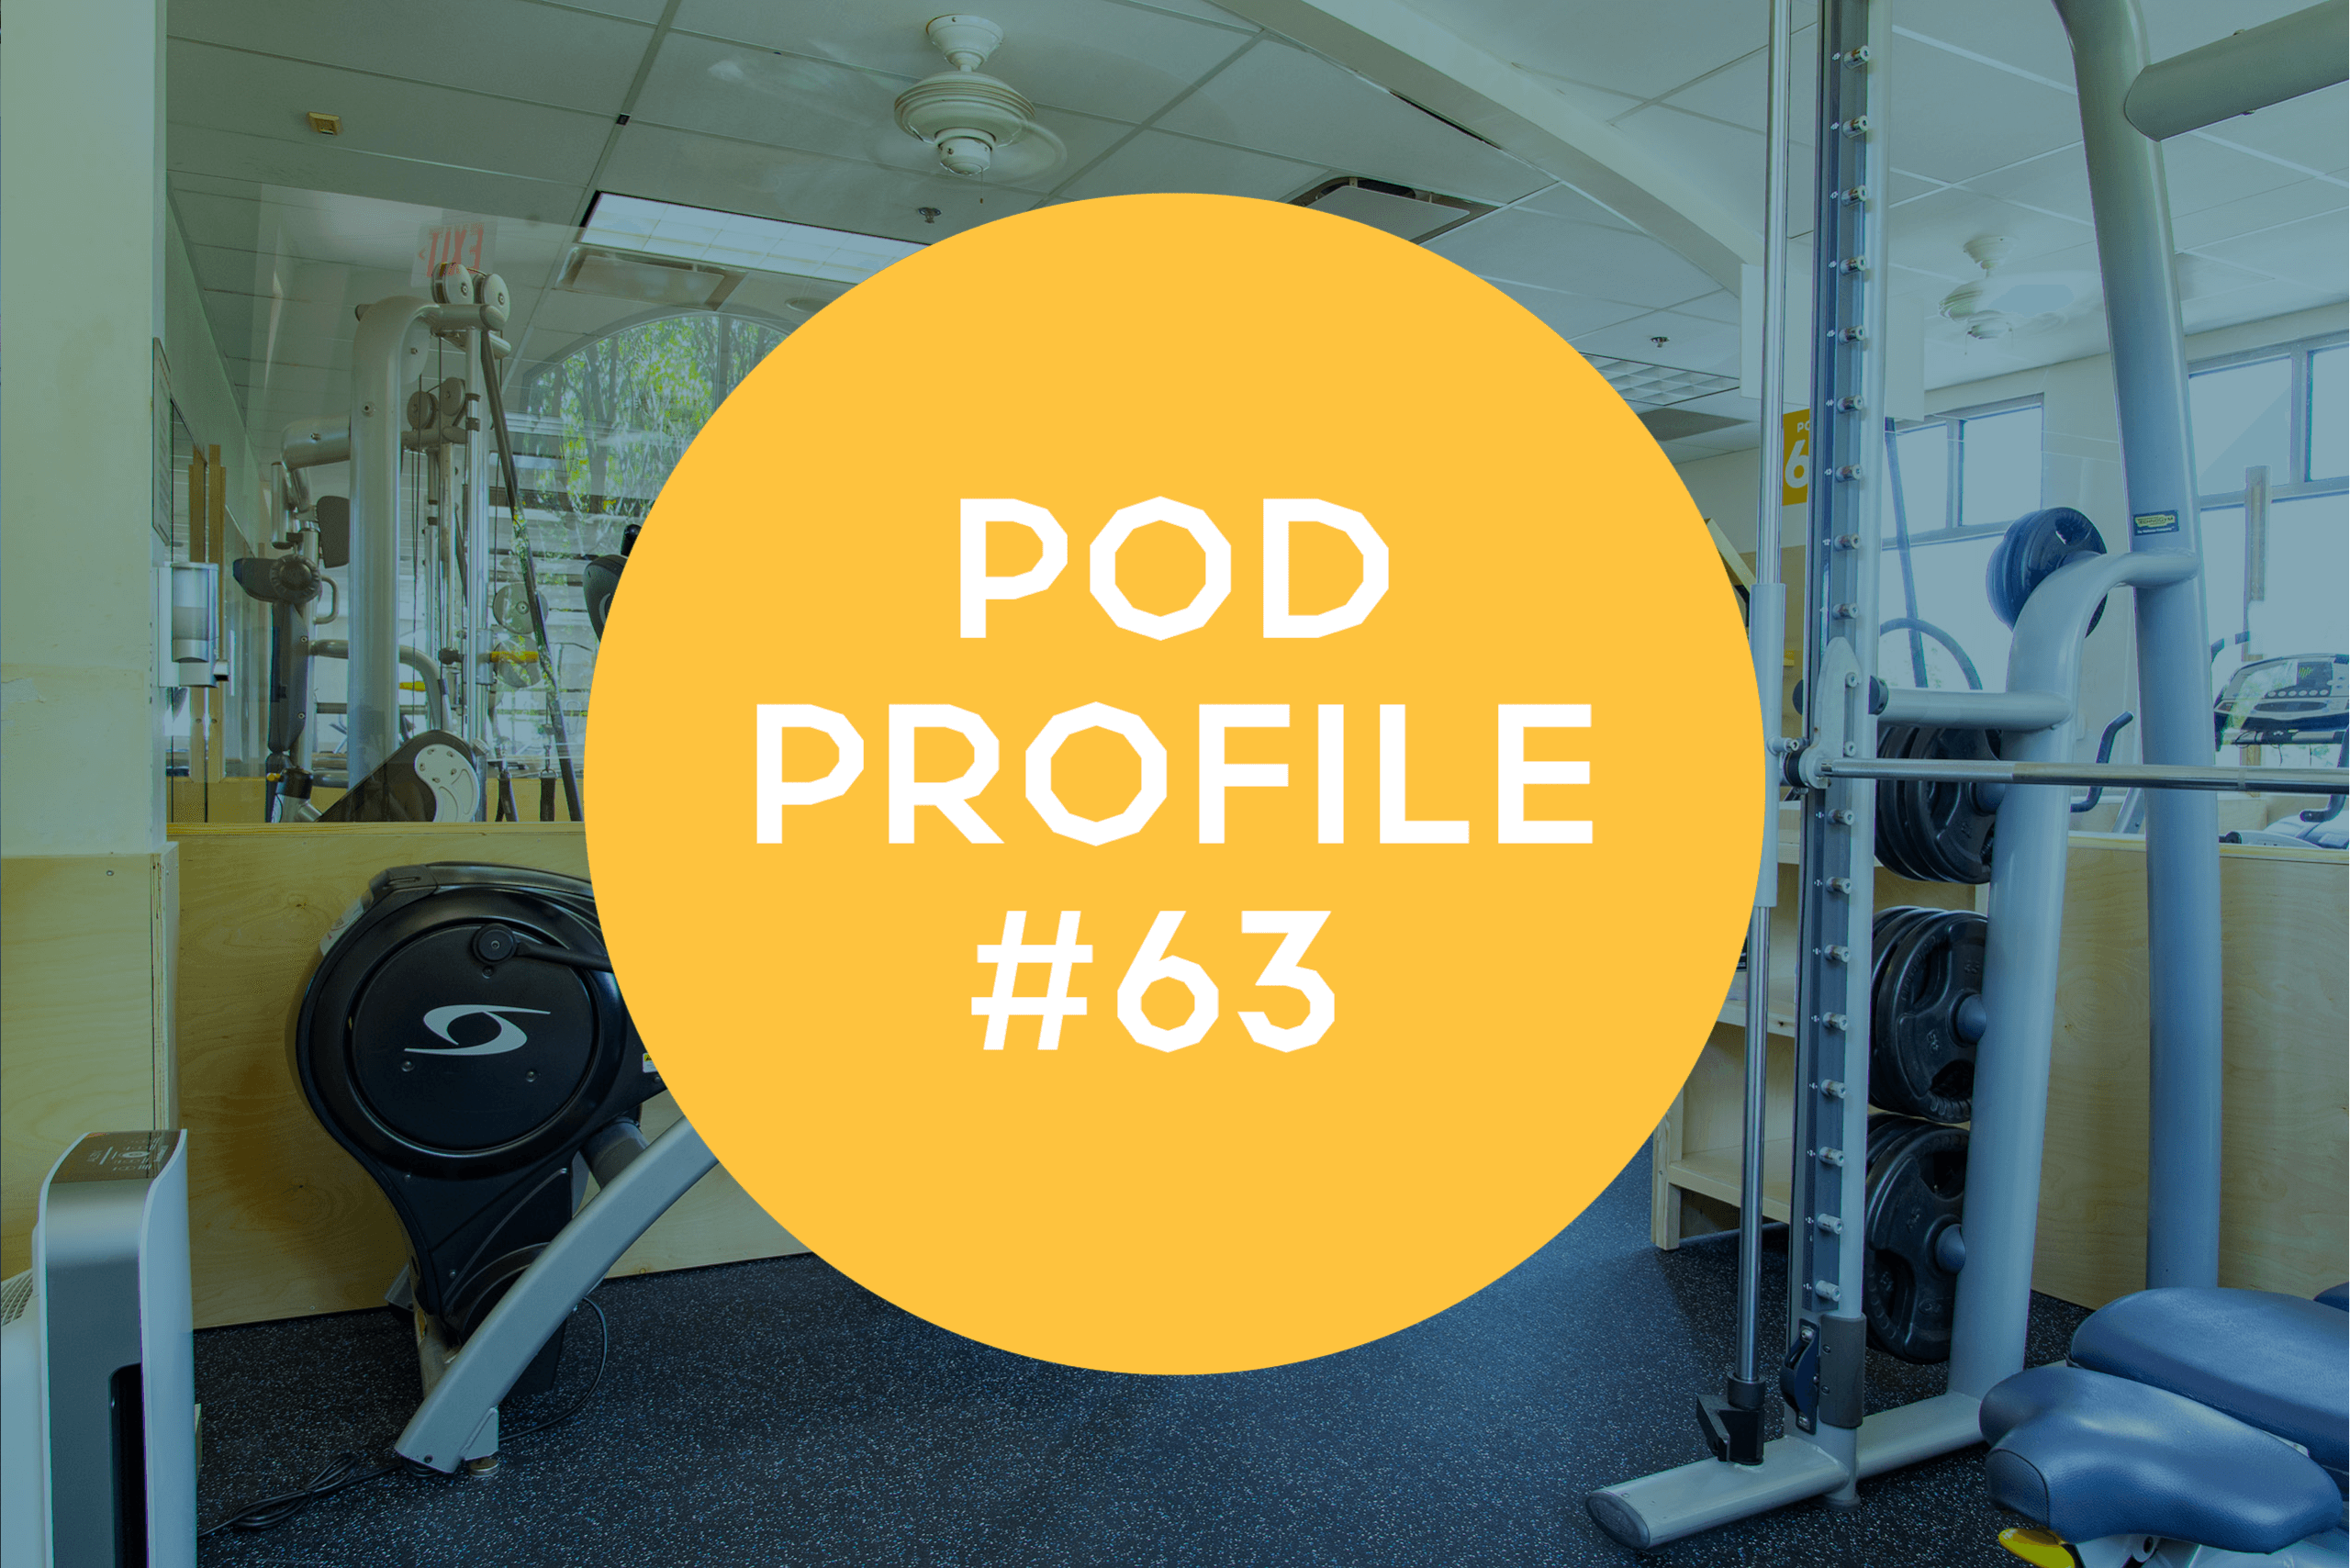 Pod Profile: Main Gym Pod 63